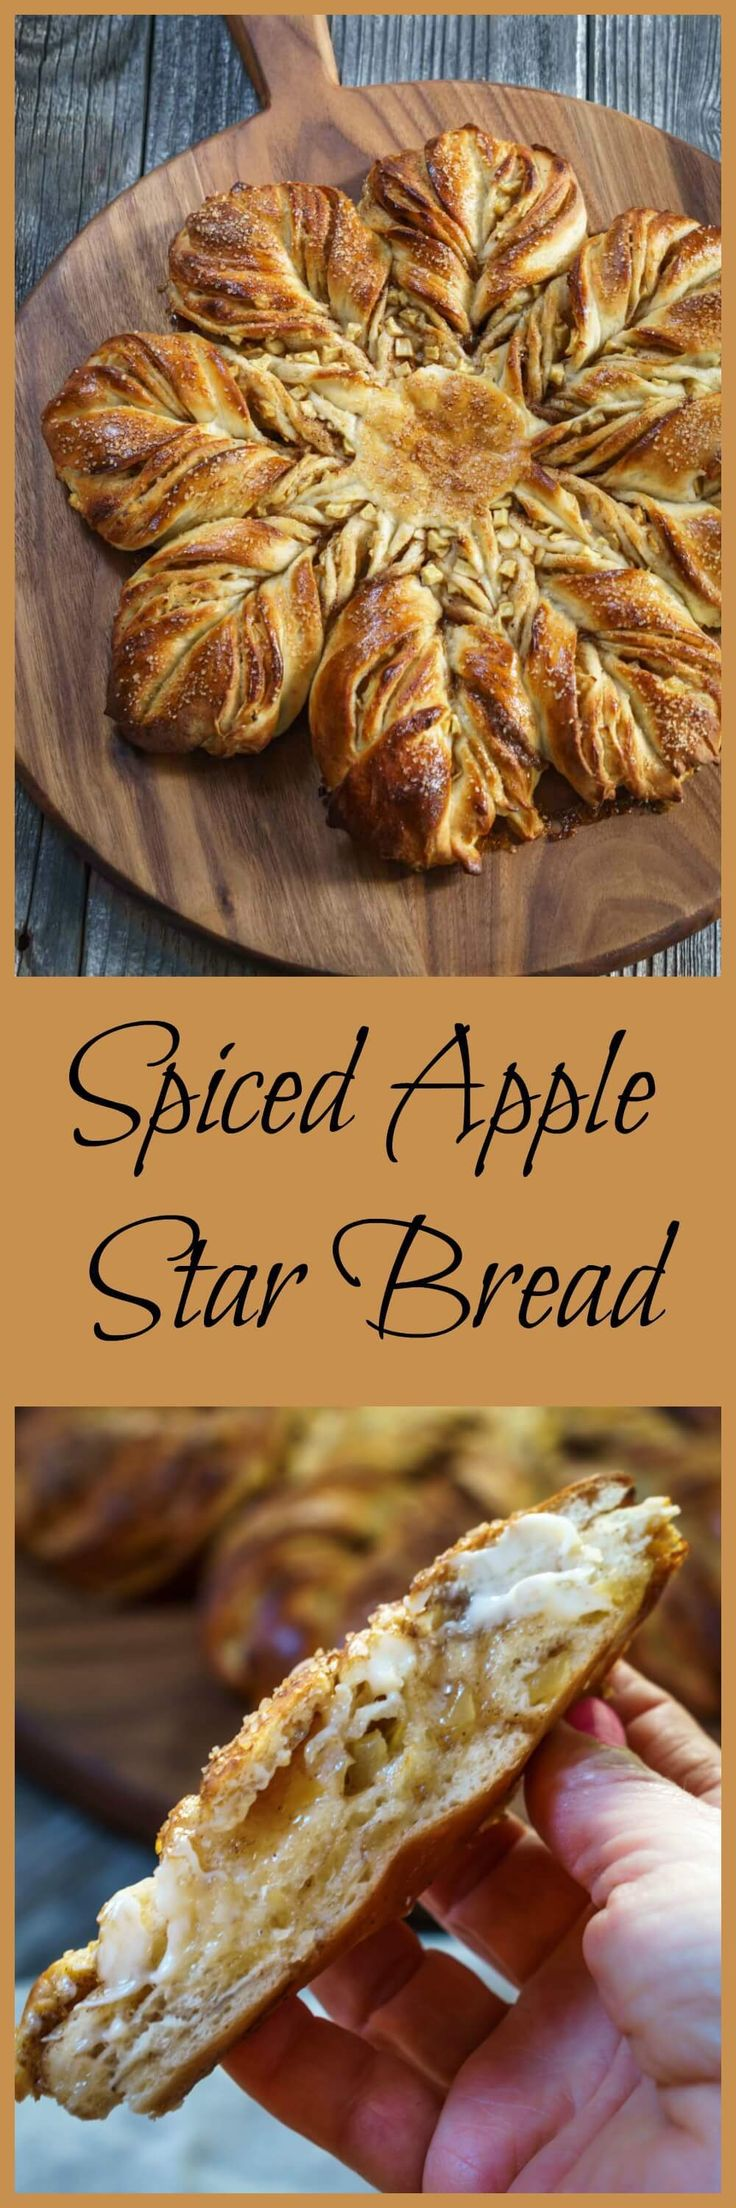 Spiced Apple Star Bread is so good you can eat it with a meal or as a dessert. It's a sweetened buttery, bread that's tender and warm from the fall spices. This bread looks hard to make, but it's easier than you think. | HostessAtHeart.com